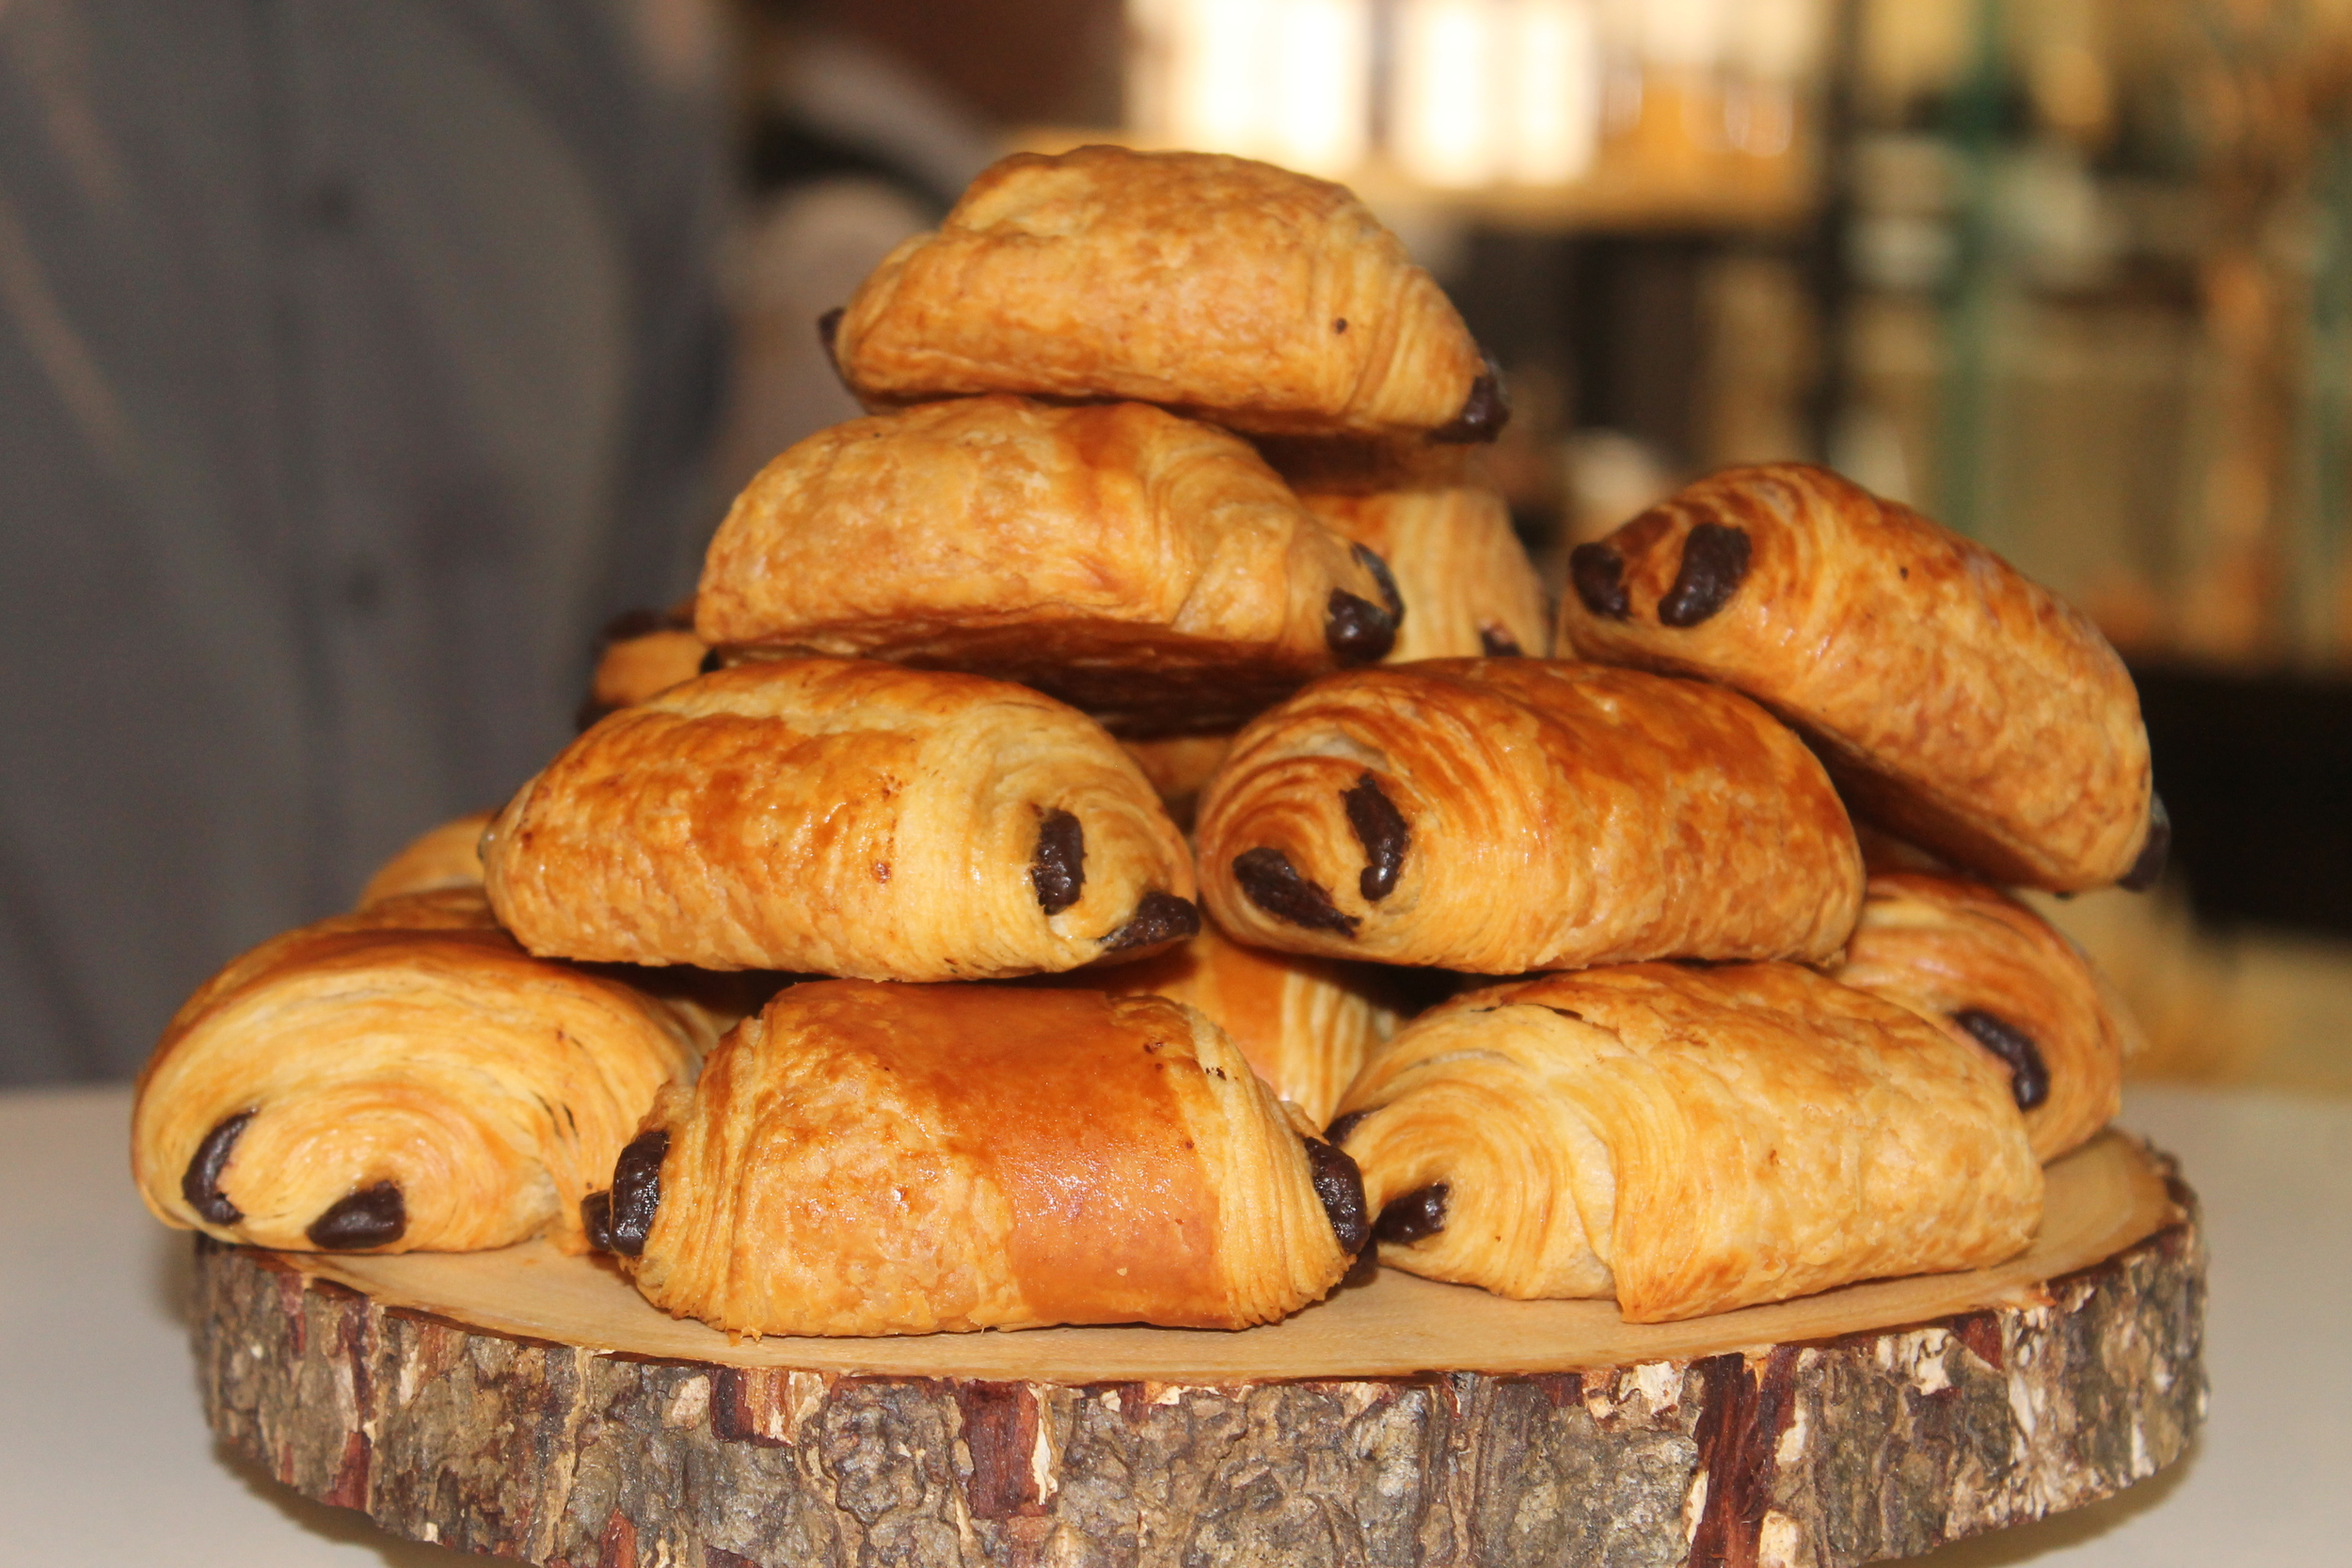 Mouthwatering Chocolate Croissants by Franck. Image property of The Entertaining House.